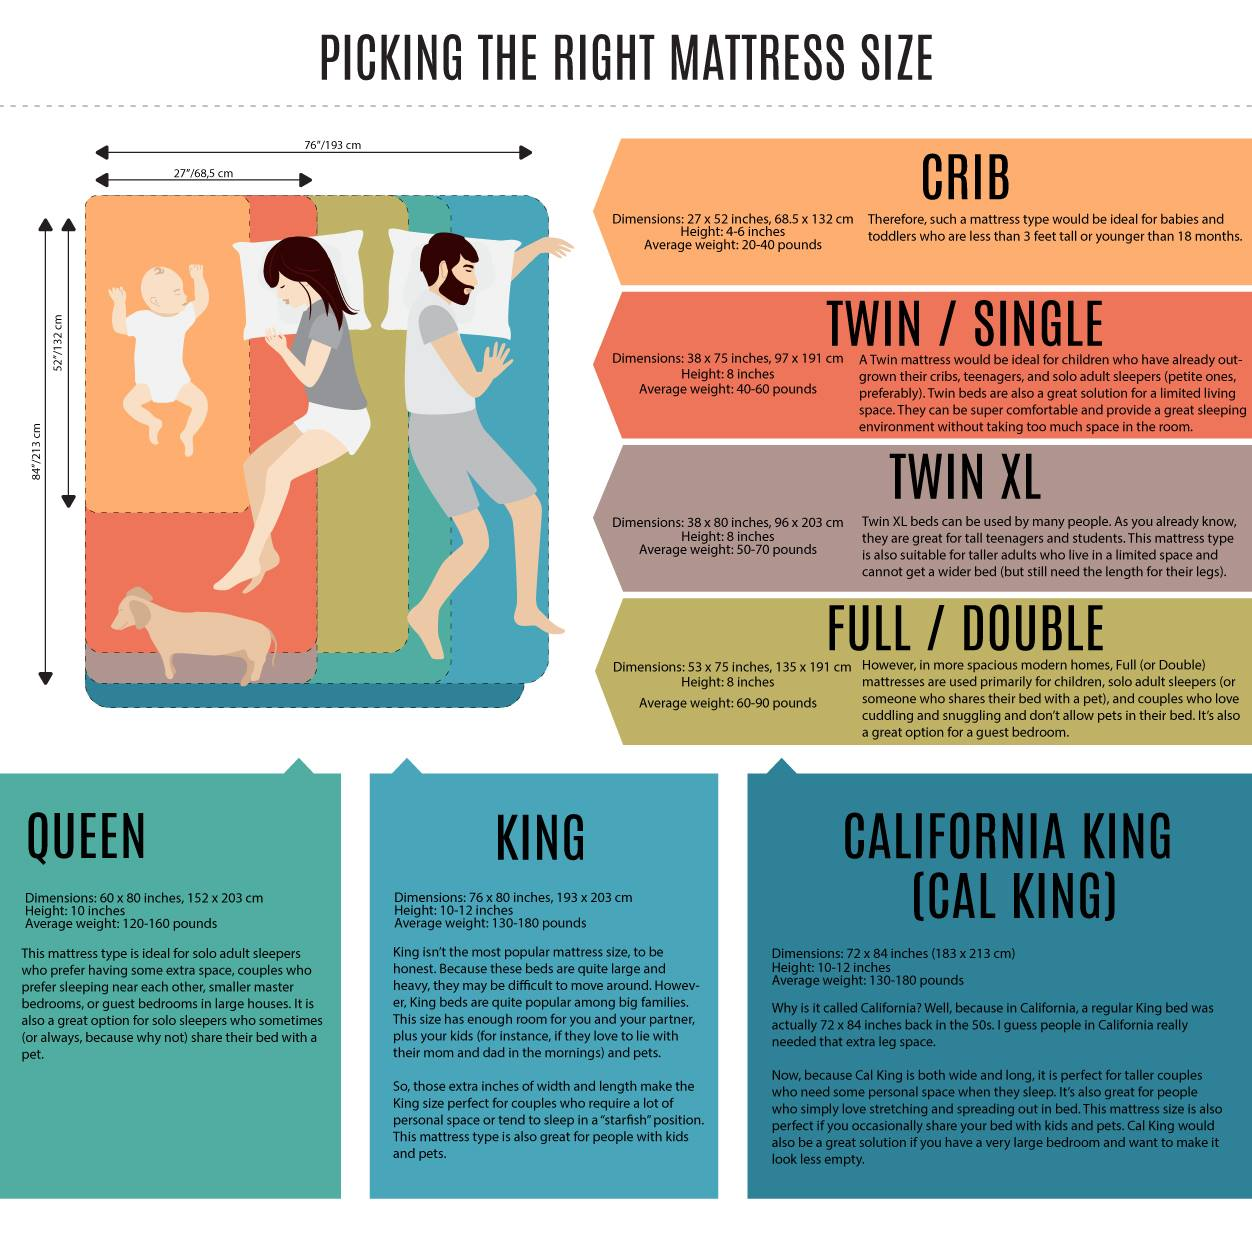 Standard Mattress Sizes Dimensions Queen King Full Twin Guide Infographic